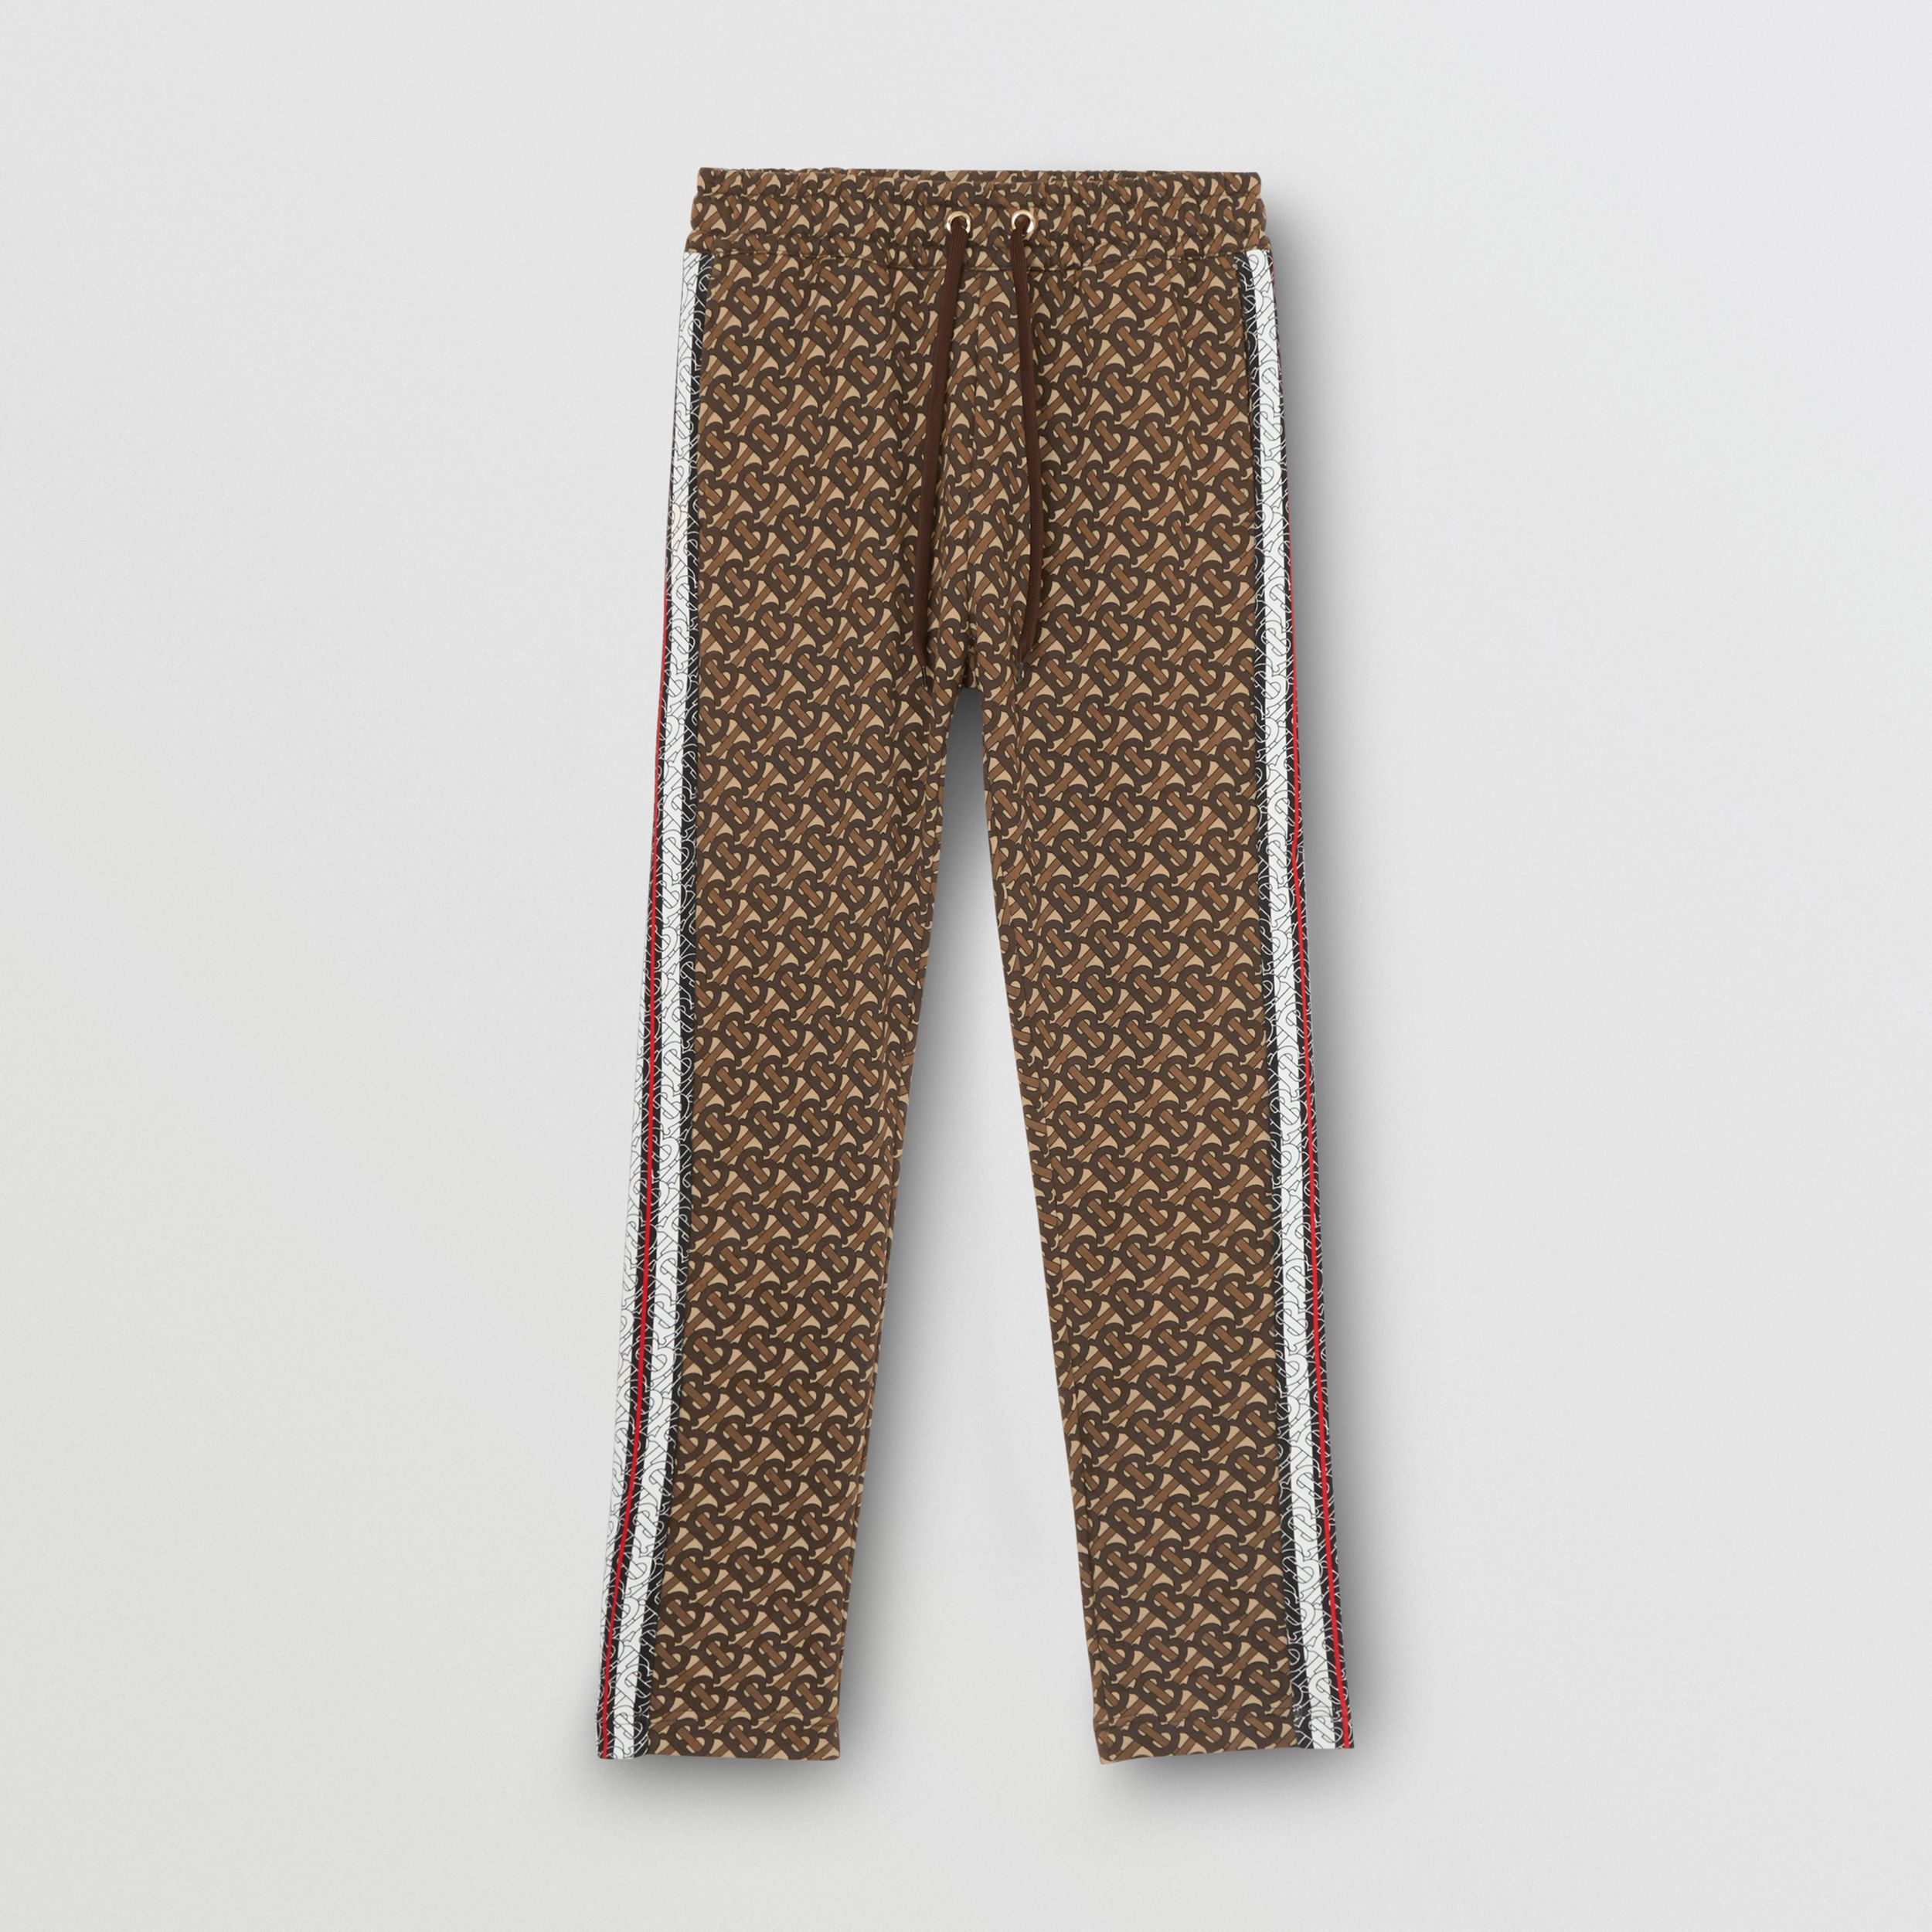 Monogram Stripe Print Cotton Jogging Pants in Bridle Brown - Women | Burberry Singapore - 3